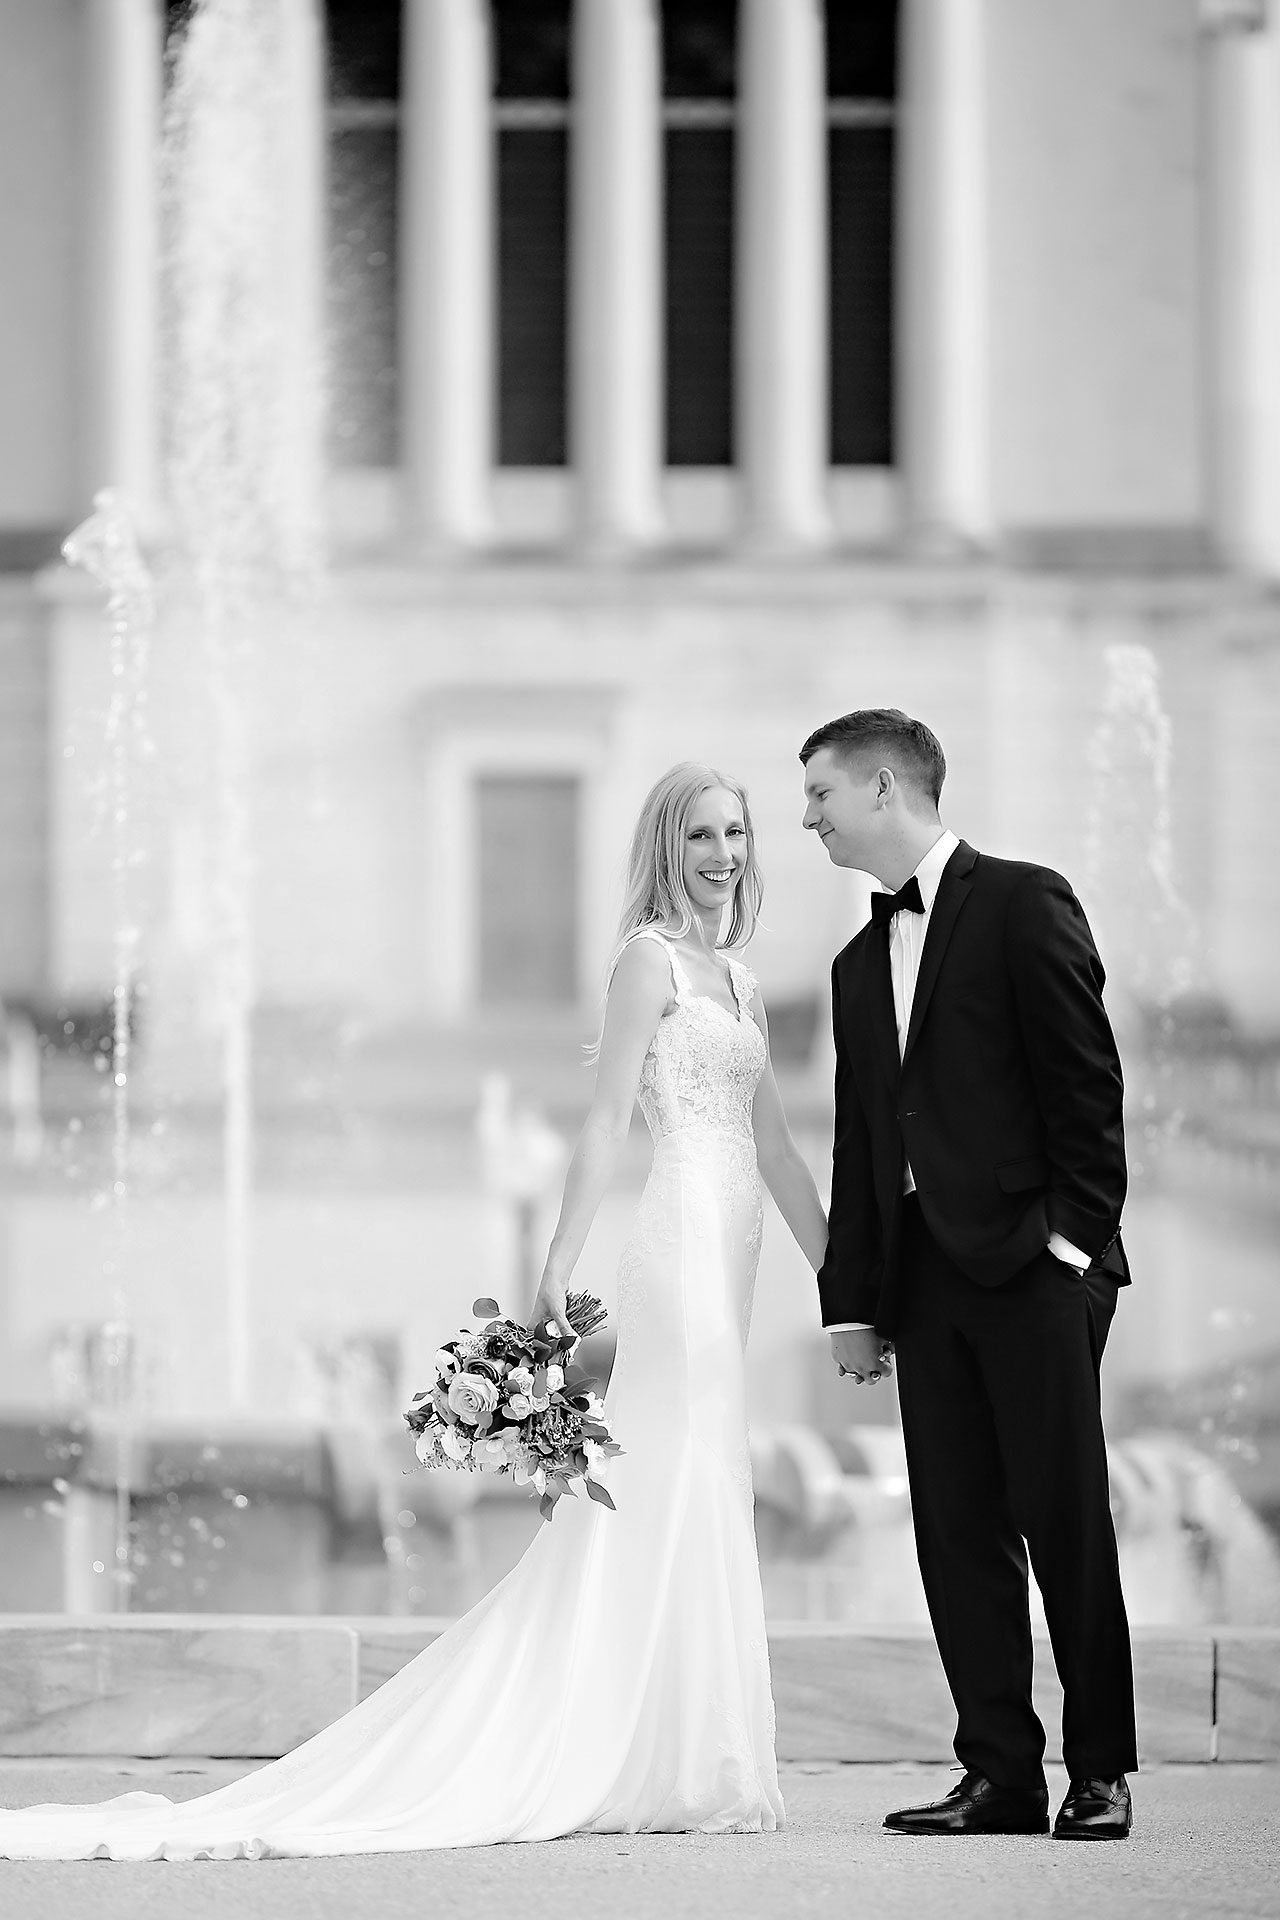 Molly Declan Scottish Rite Indianapolis Wedding 250